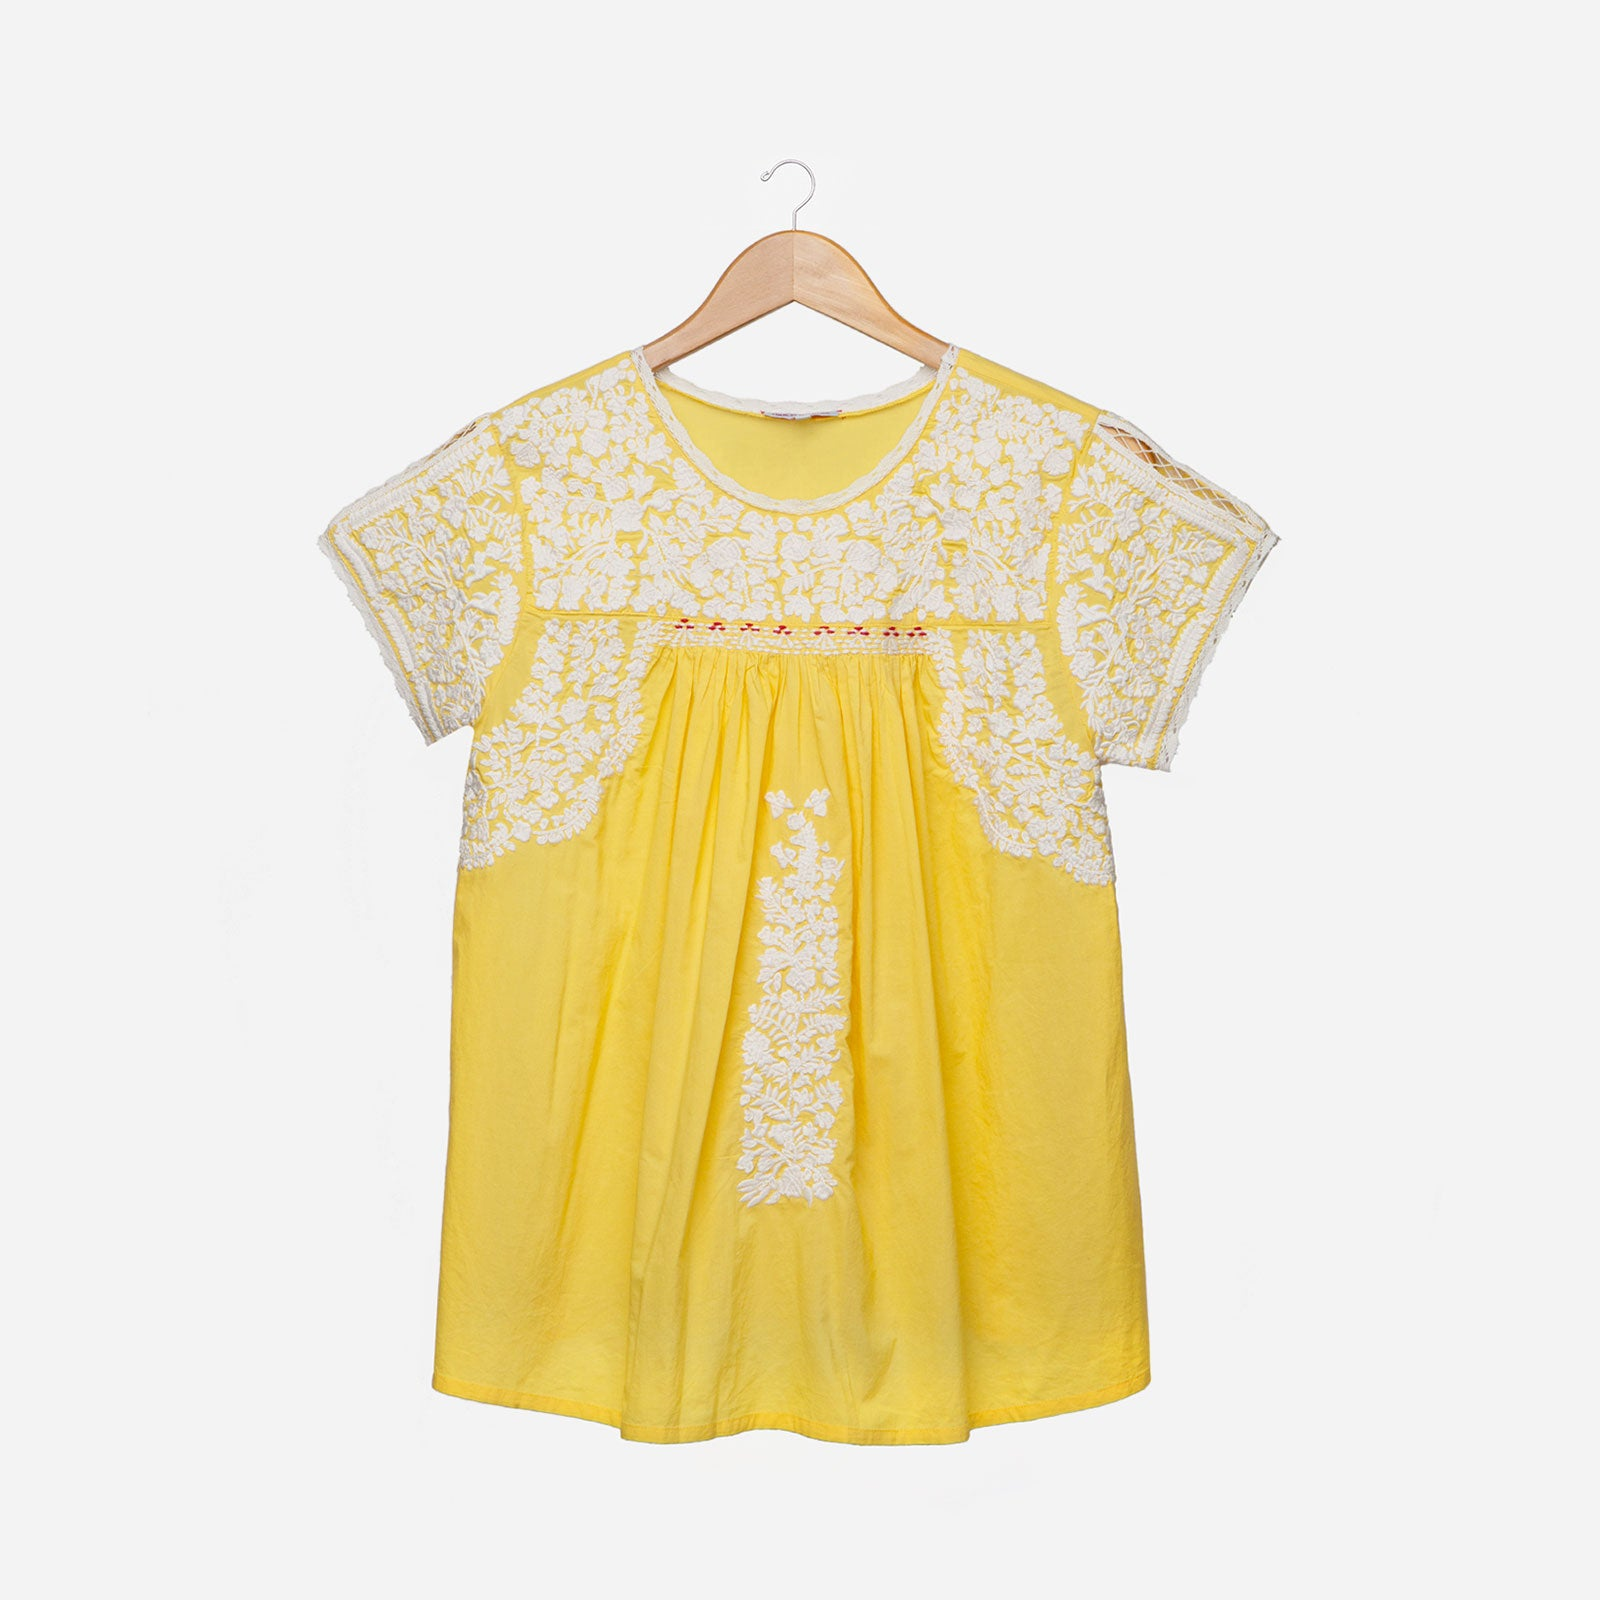 Floral Embroidered Lace Top Yellow Oyster - Frances Valentine